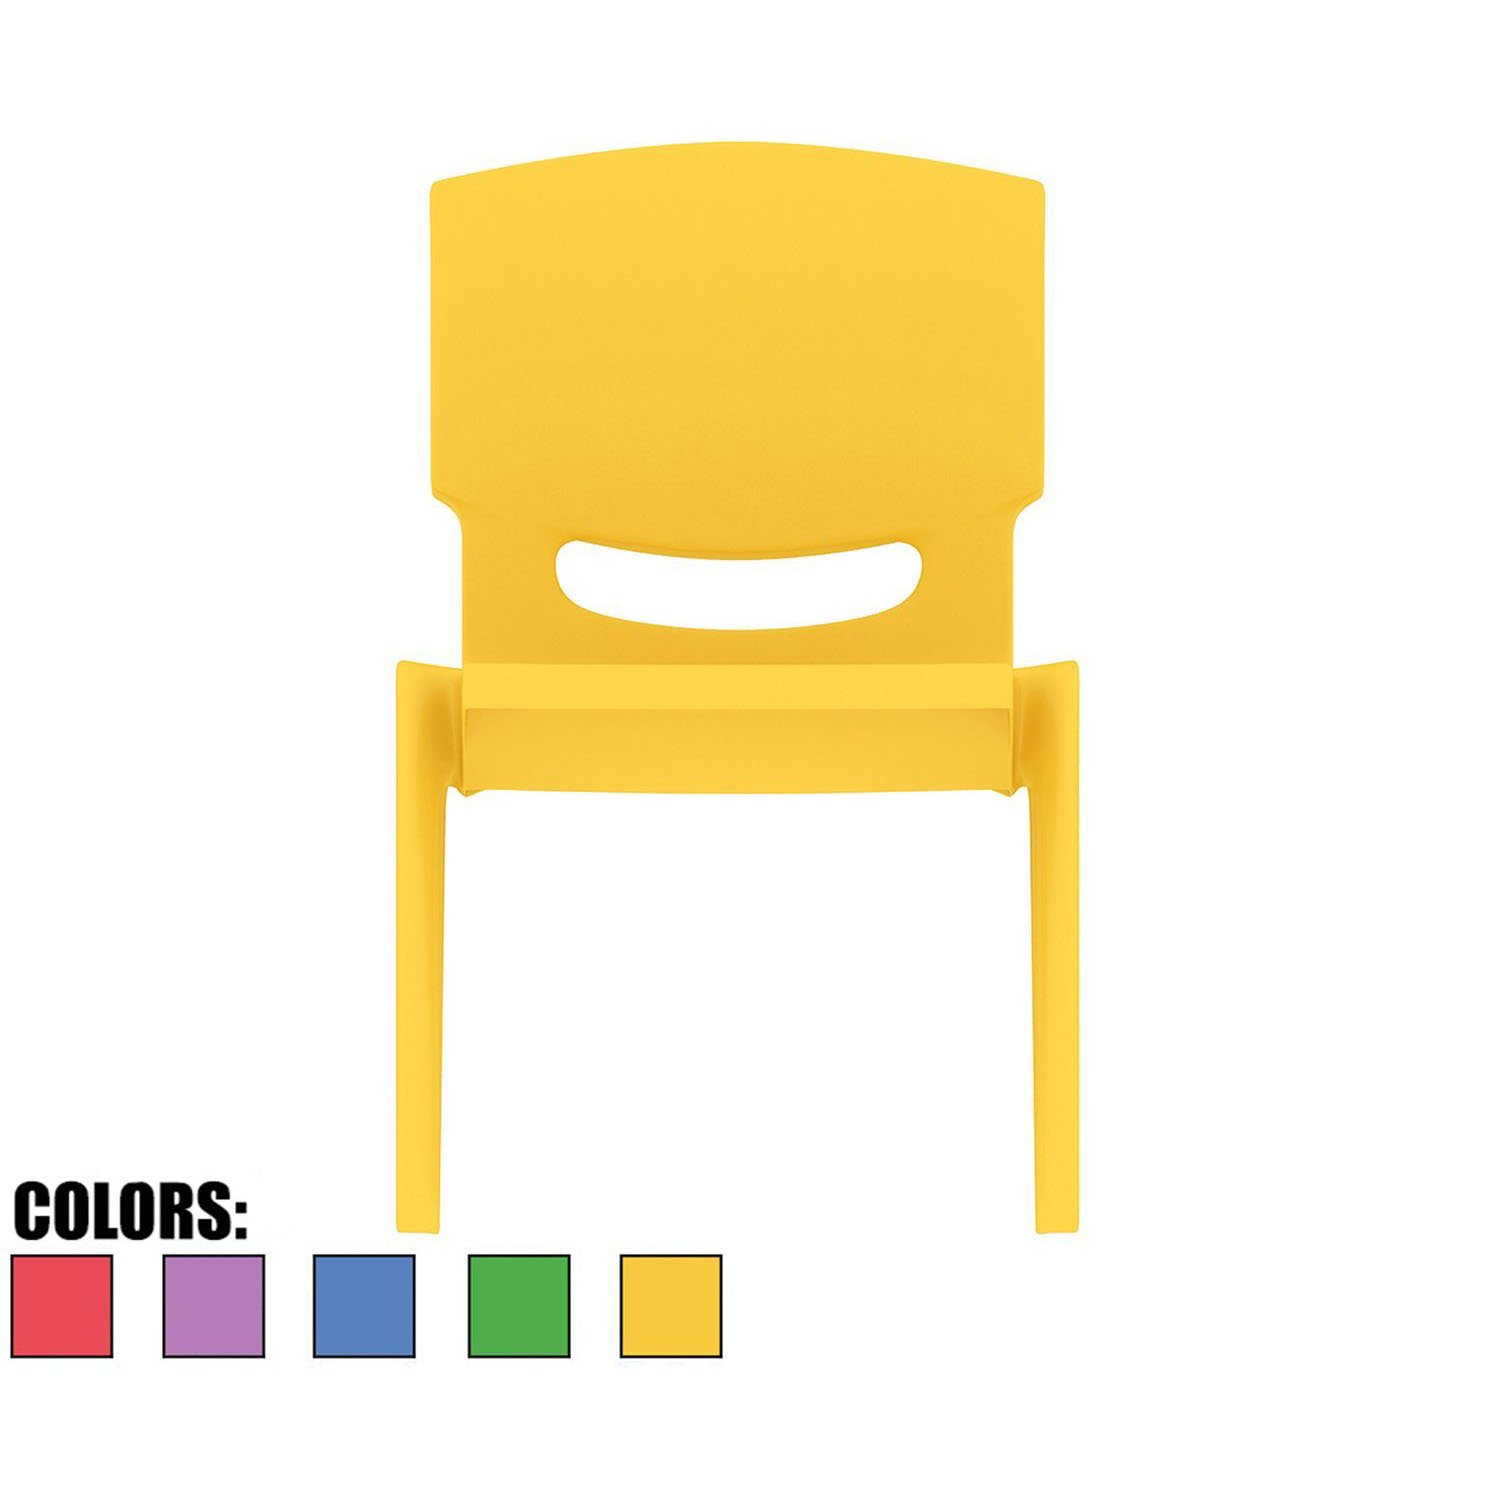 2xhome - Yellow - Kids Size Plastic Side Chair 10'' Seat Height Yellow Childs Chair Childrens Room School Chairs No Arm Arms Armless Molded Plastic Seat Stackable